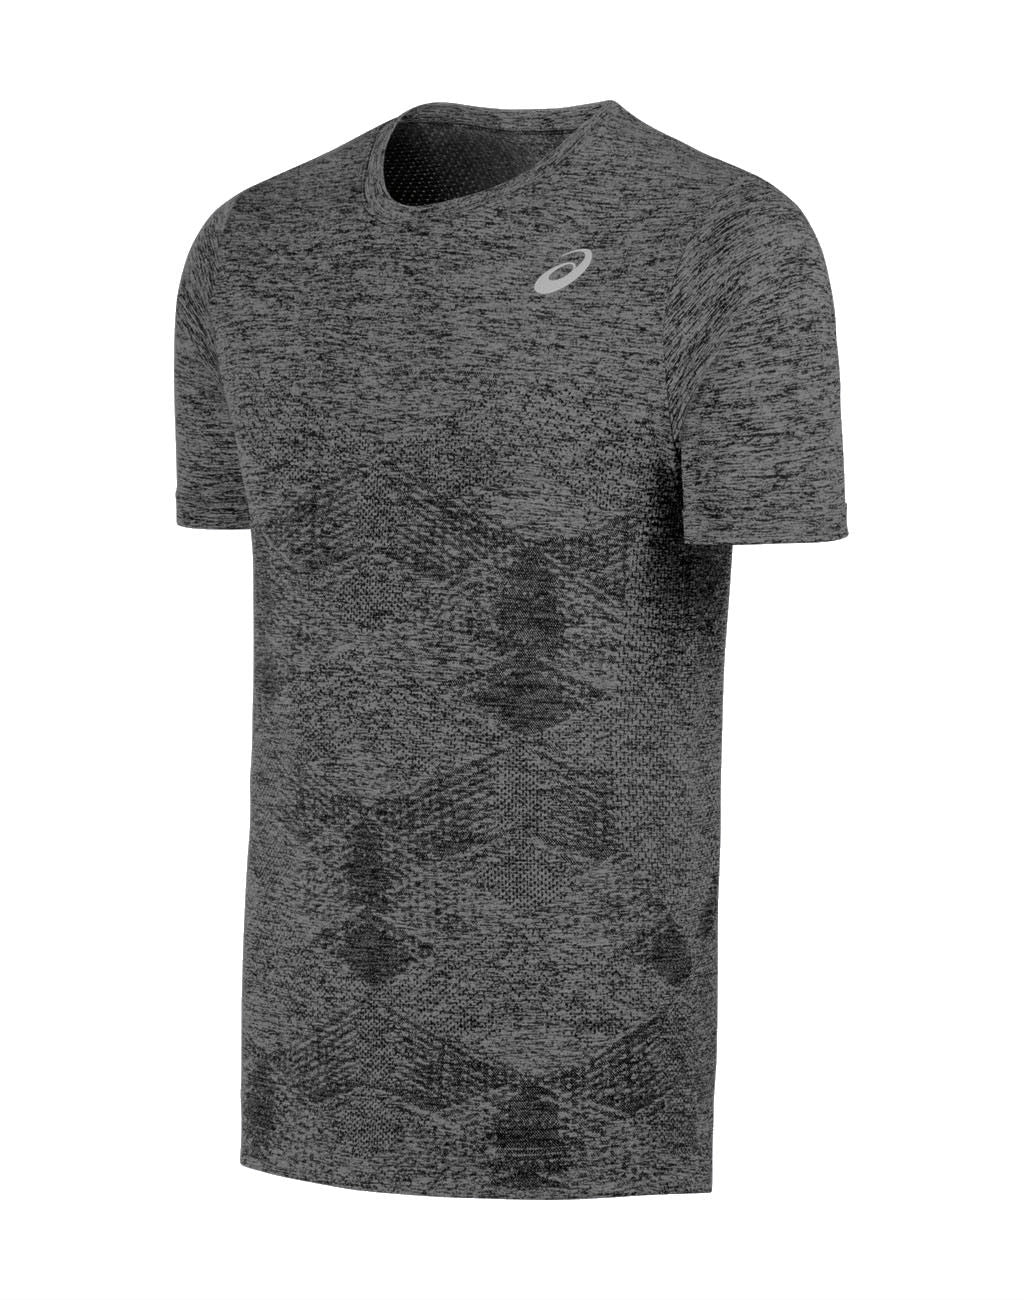 ASICS Seamless Short Sleeve Top (Men's)M_master_image